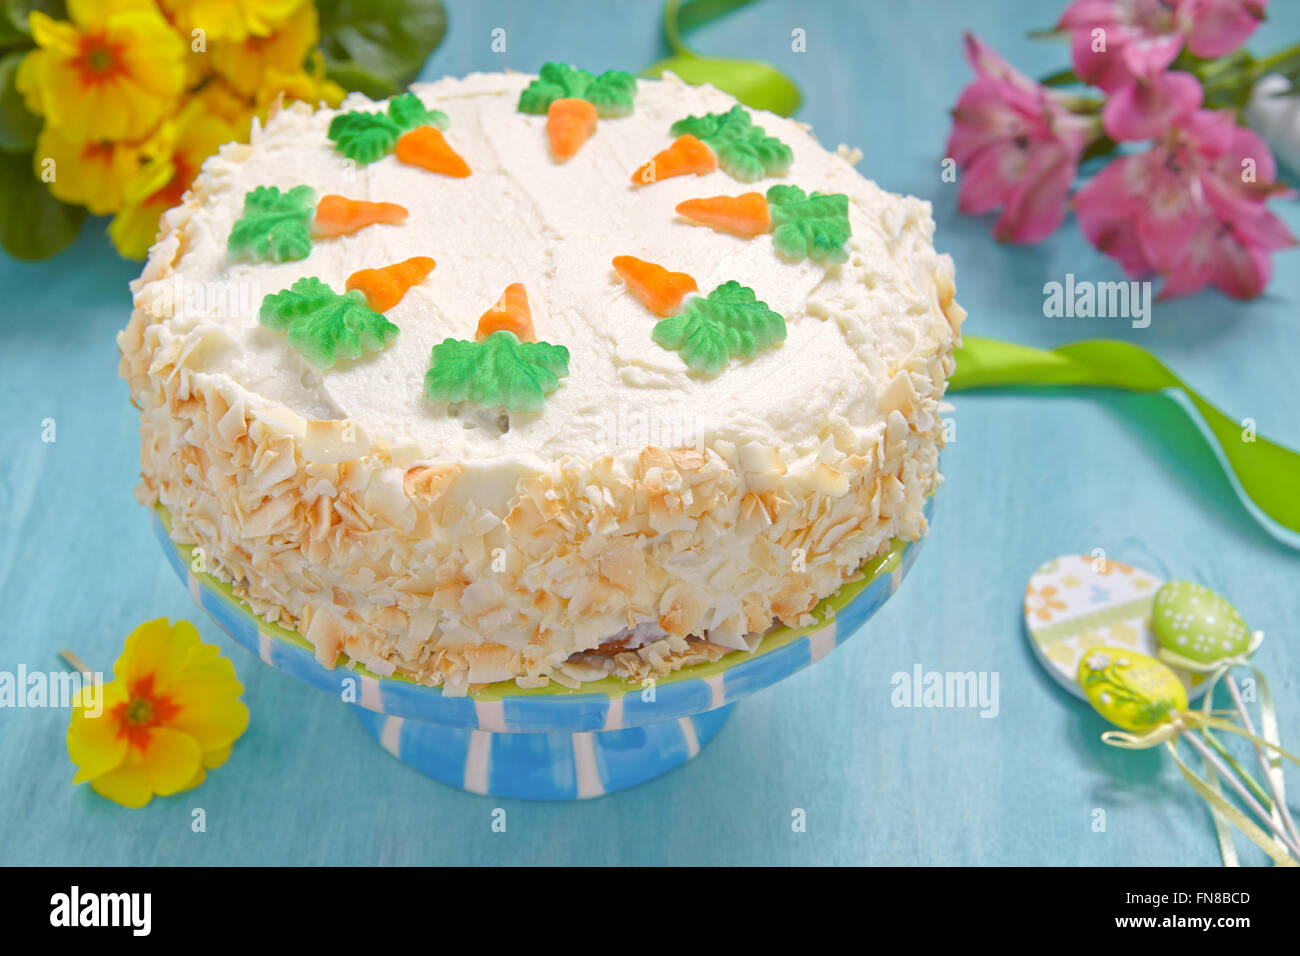 Delicious Carrot Cake - Stock Image